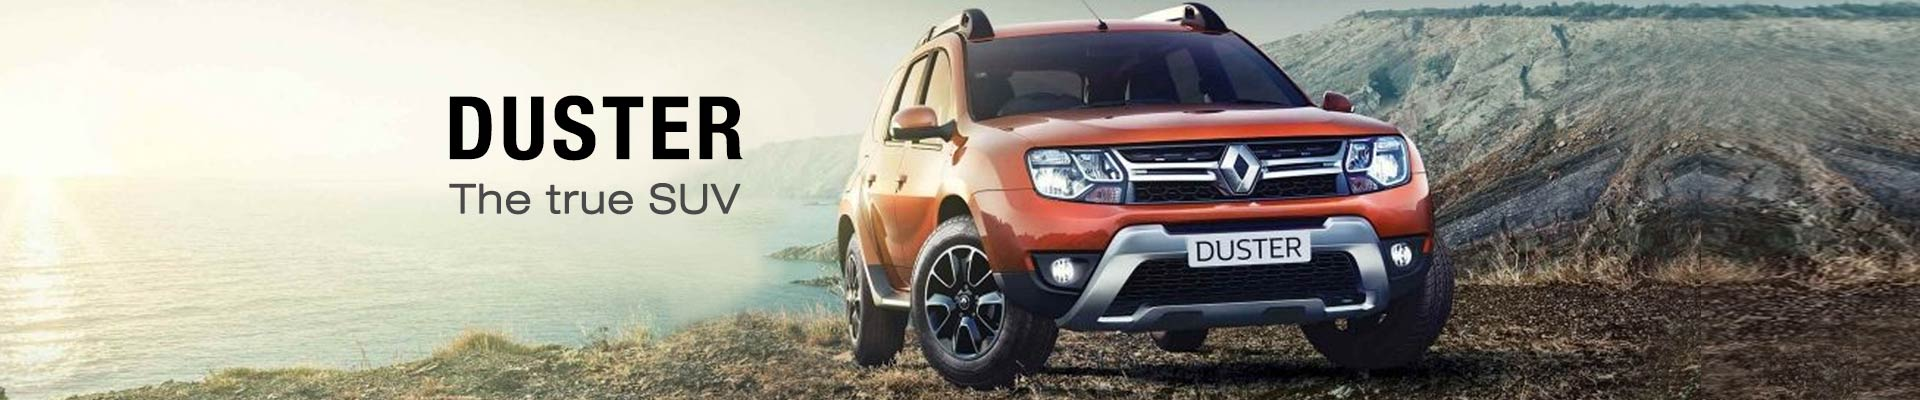 Renault Duster price in Bangalore